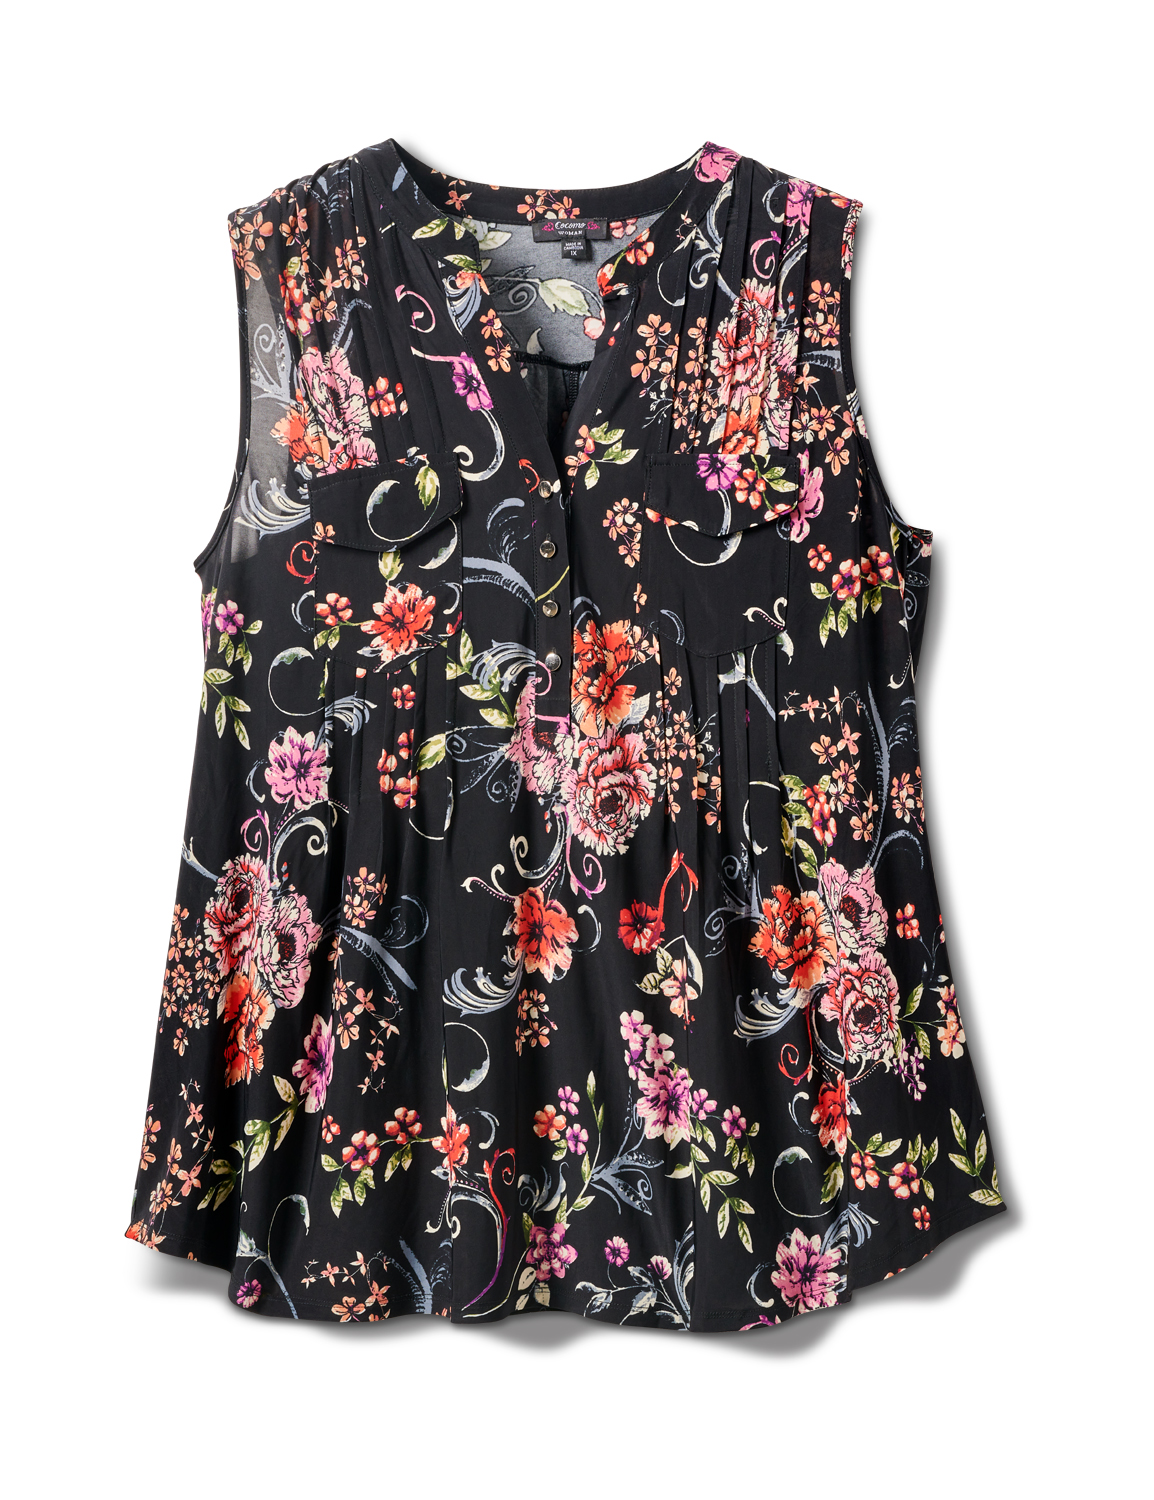 Sleeveless Floral Pintuck Popover -Black/Pink/Red - Front